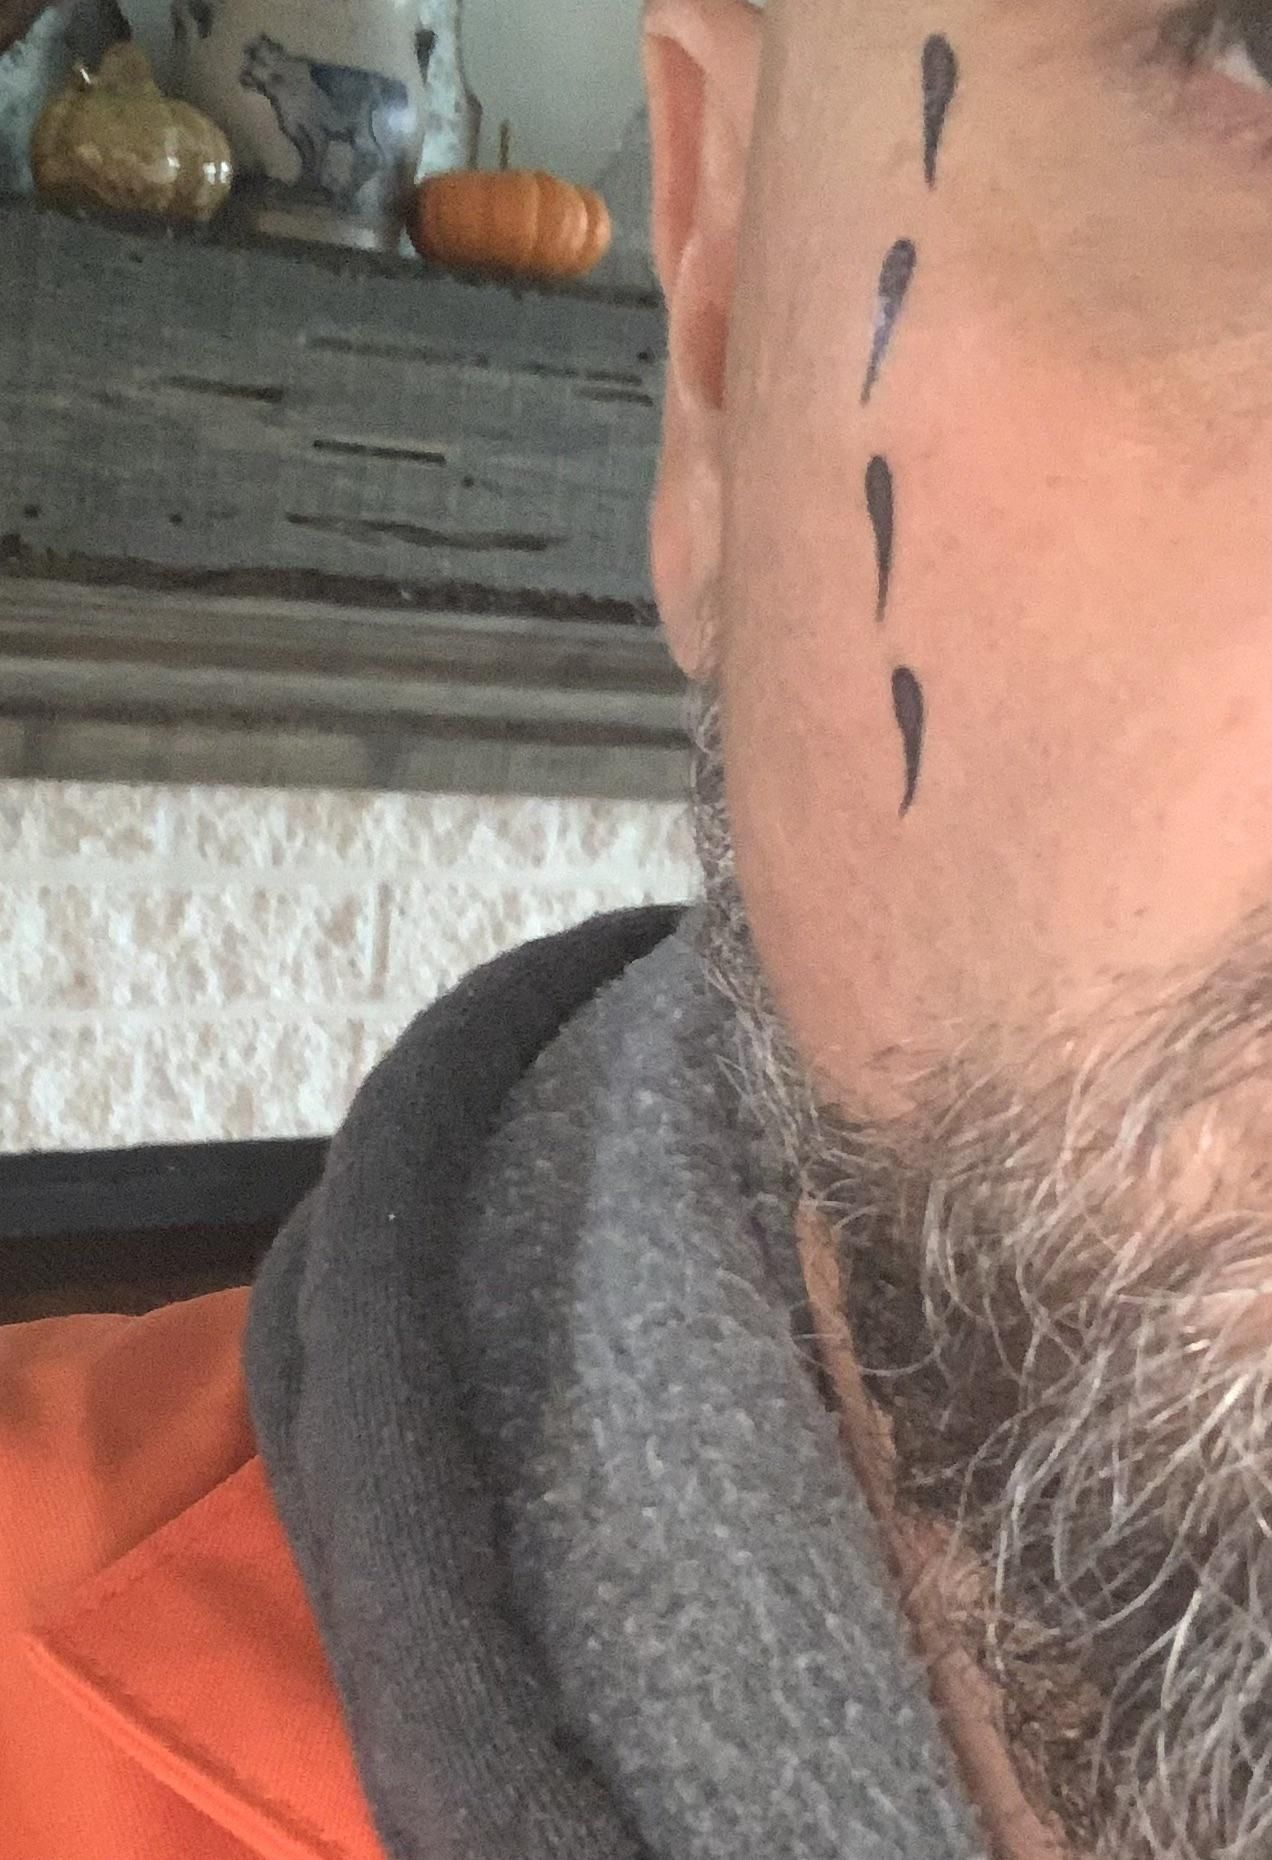 Dressing up as a convict to pass out candy. Wife put fake tear tattoos on upside down. Now I have sperm tattoos on my face.